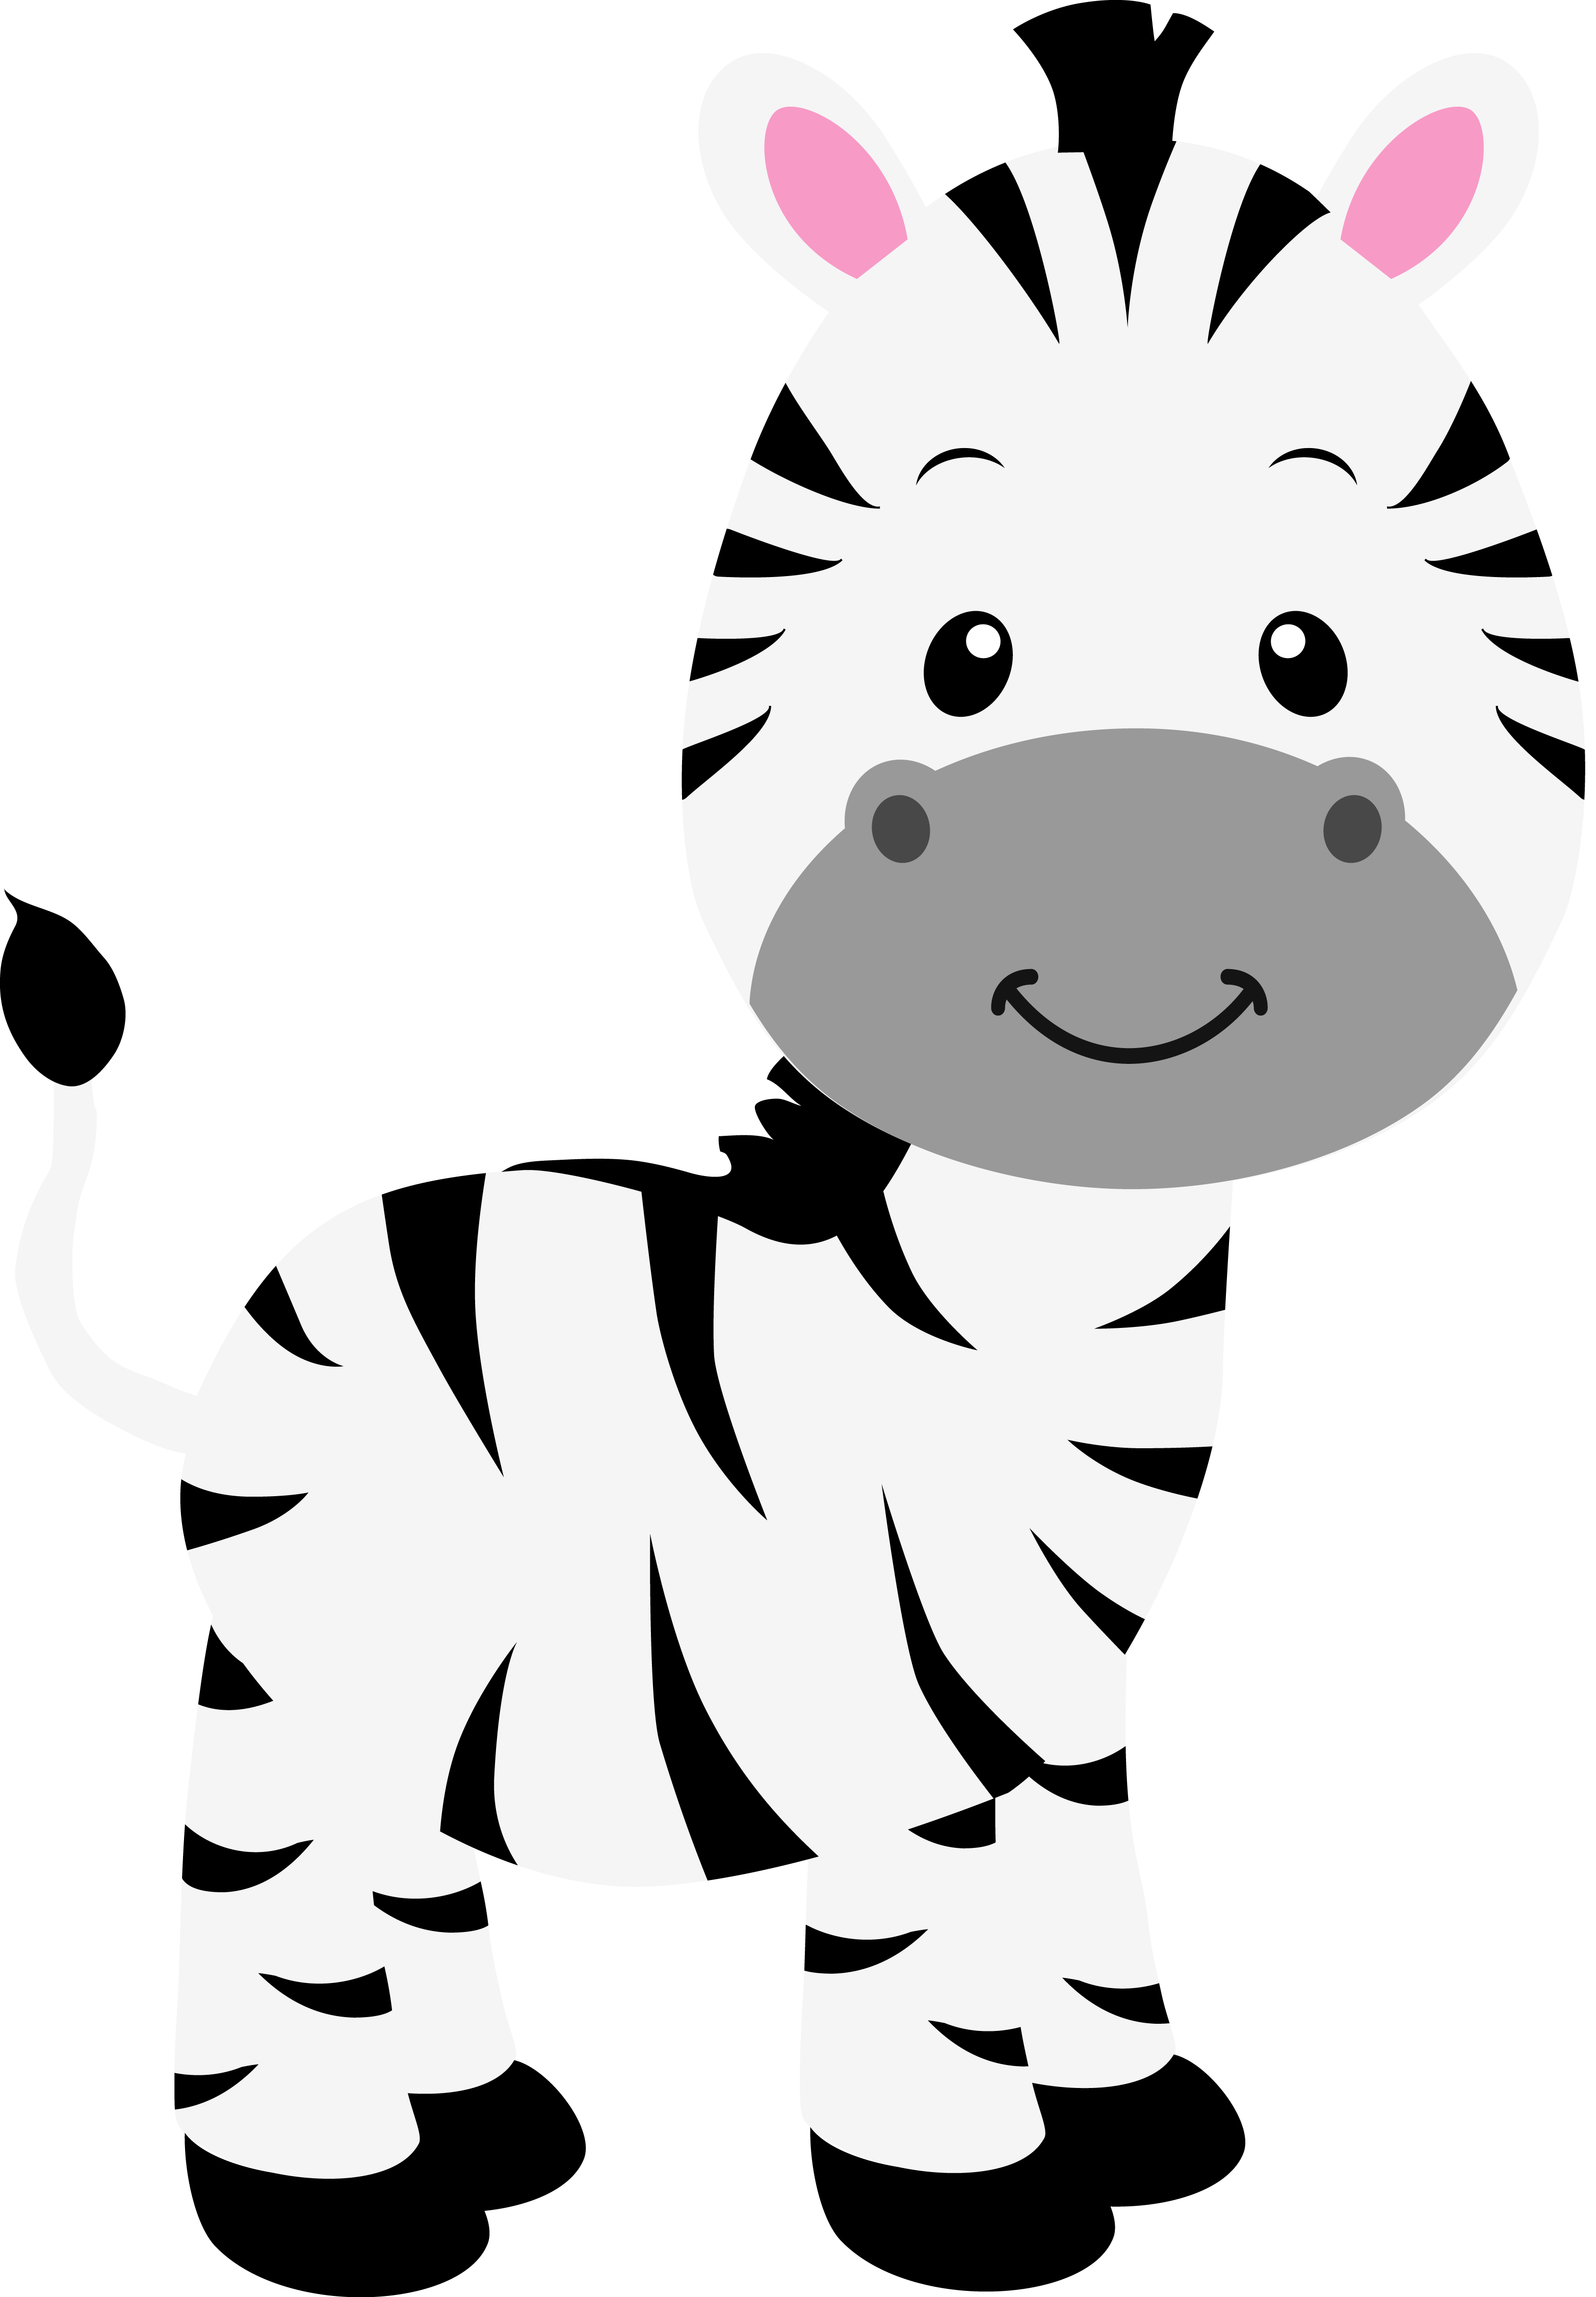 clipart black and white stock Forest animal clipart black and white. Cebra en alta resoluci